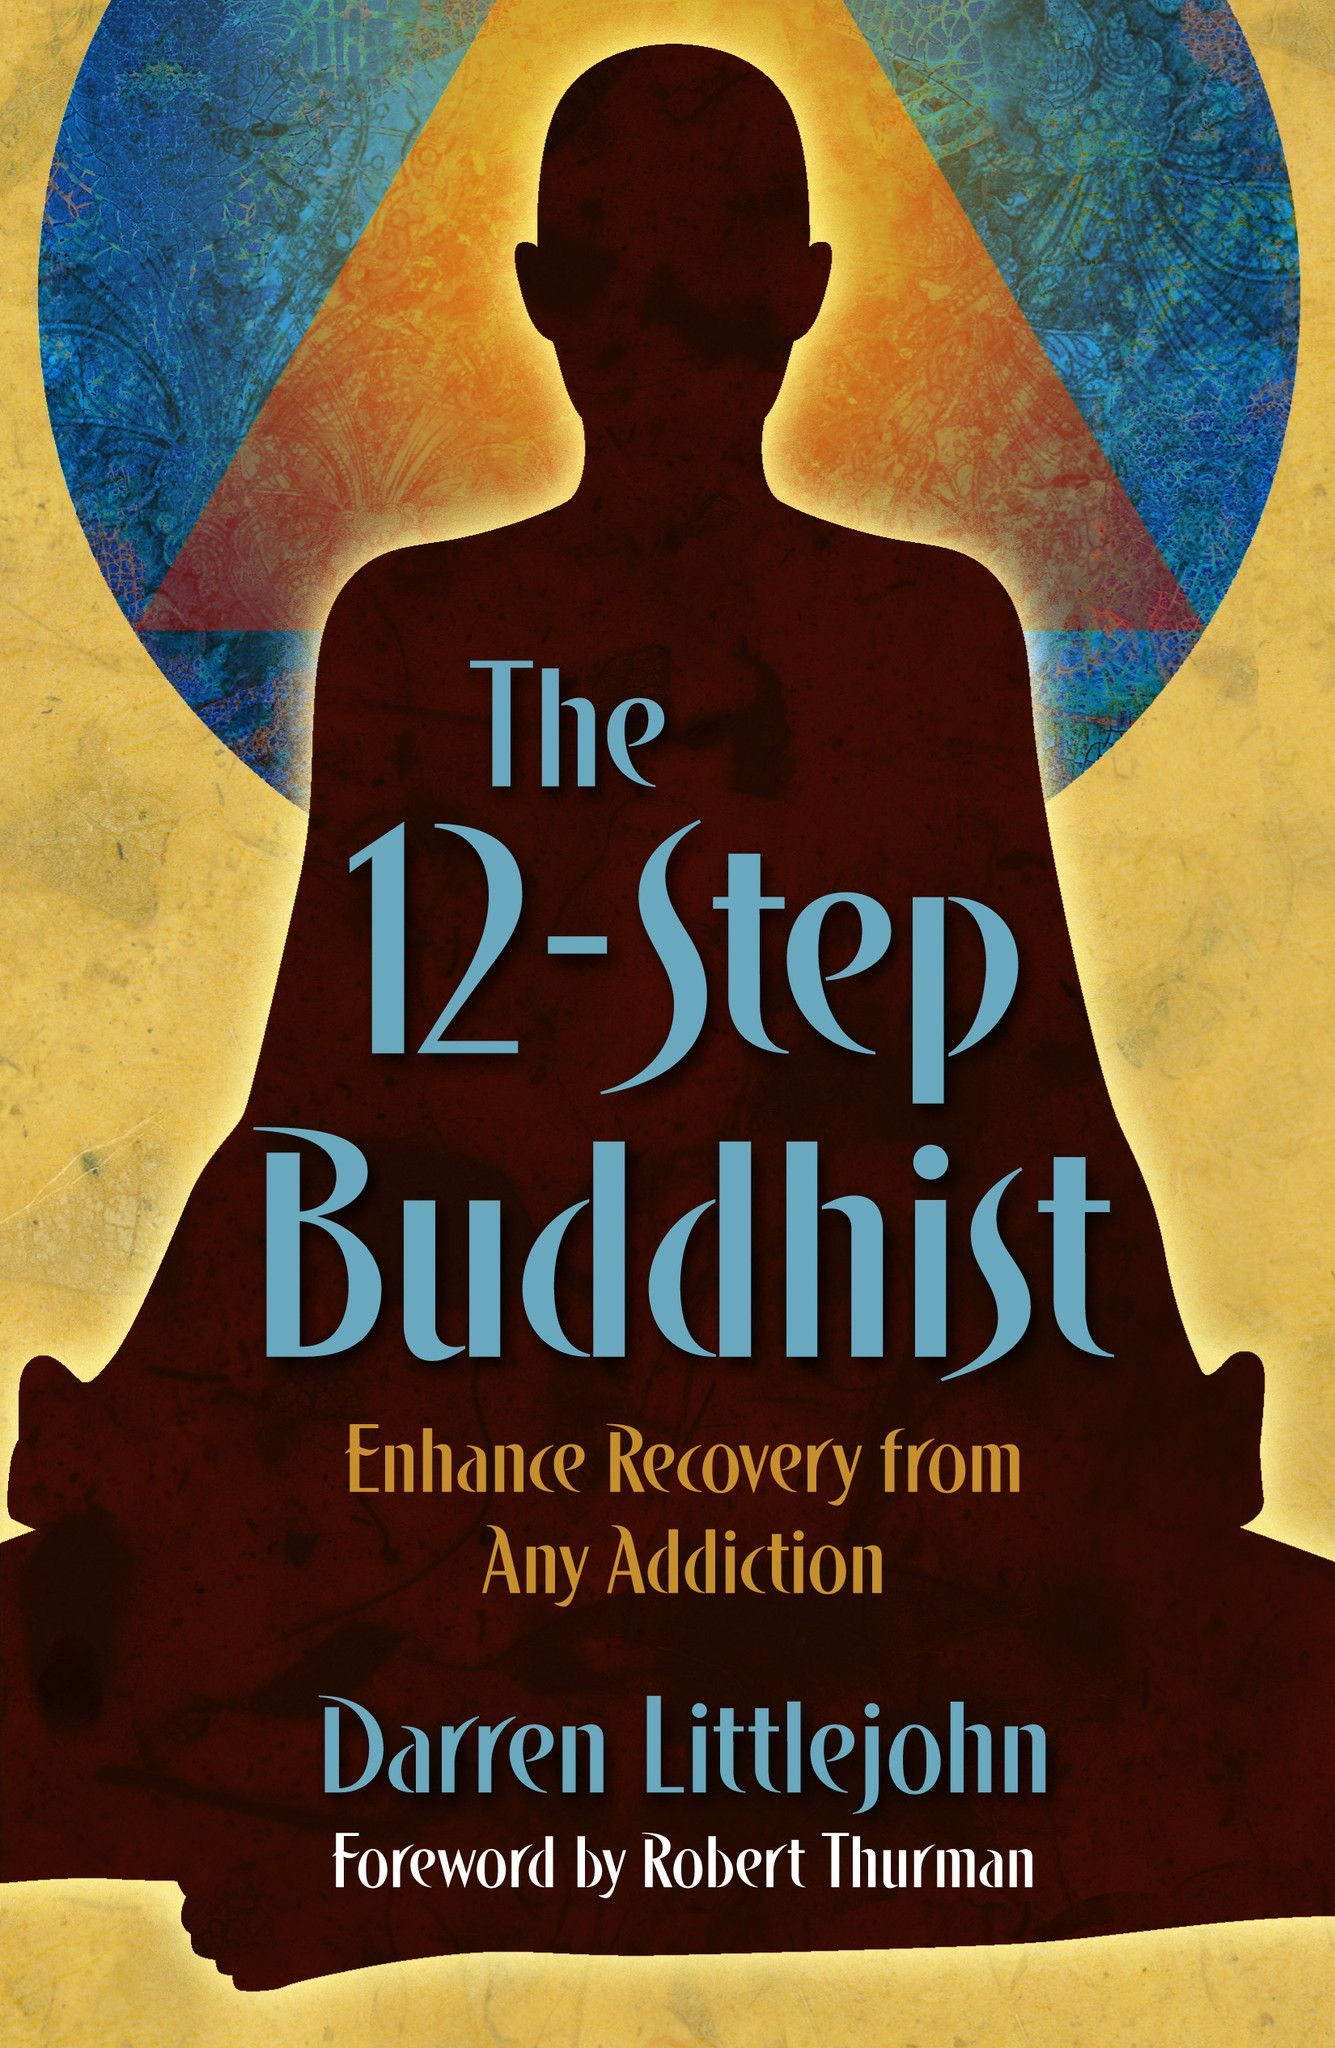 the 12 step buddhist enhance recovery from any addiction booksthe 12 step buddhist enhance recovery from any addiction